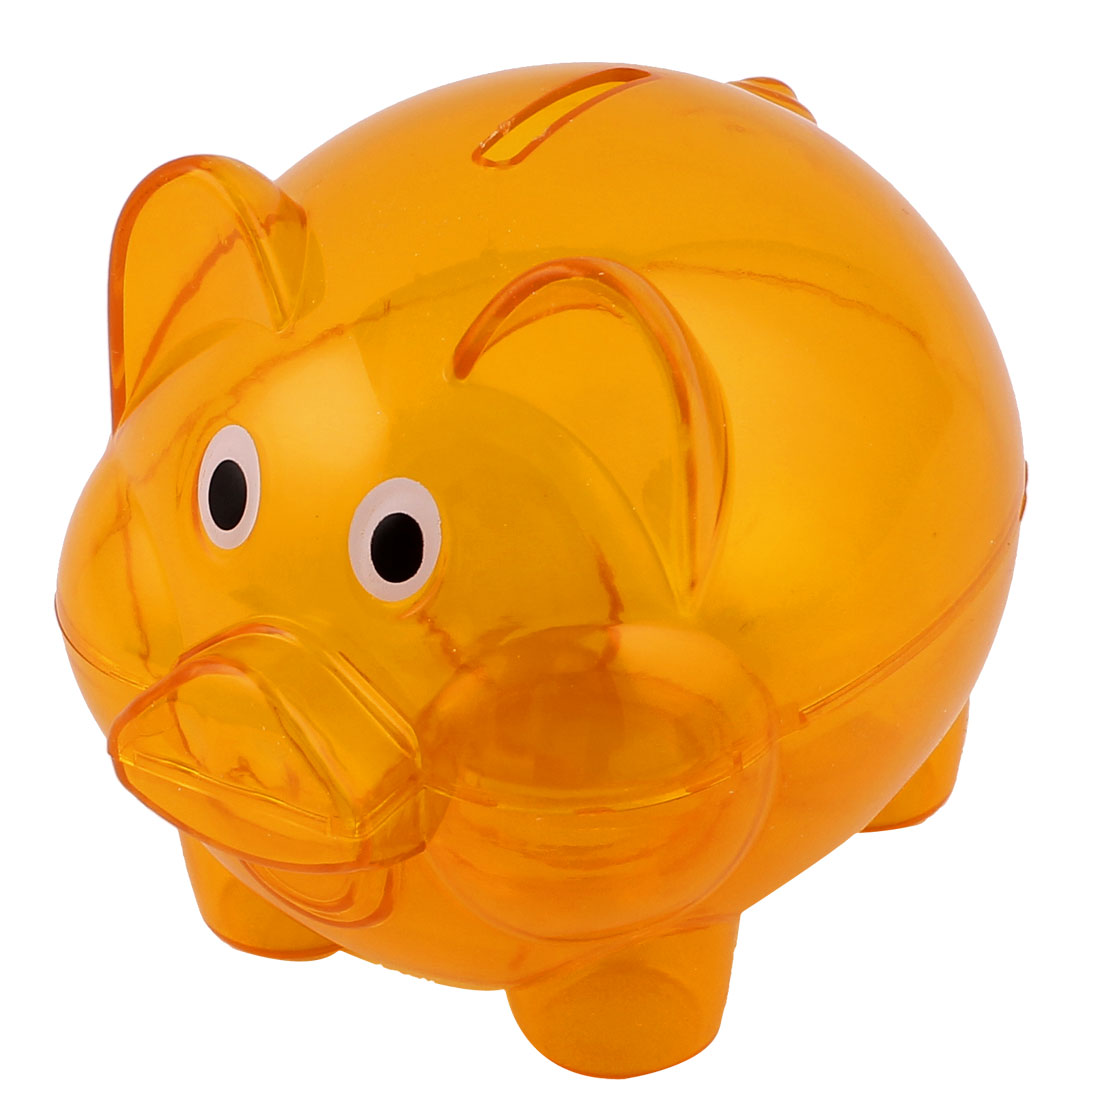 Clear Orange Plastic Piggy Bank Coin Money Cash Saver Collectible Savings Pig Toy Safe Box